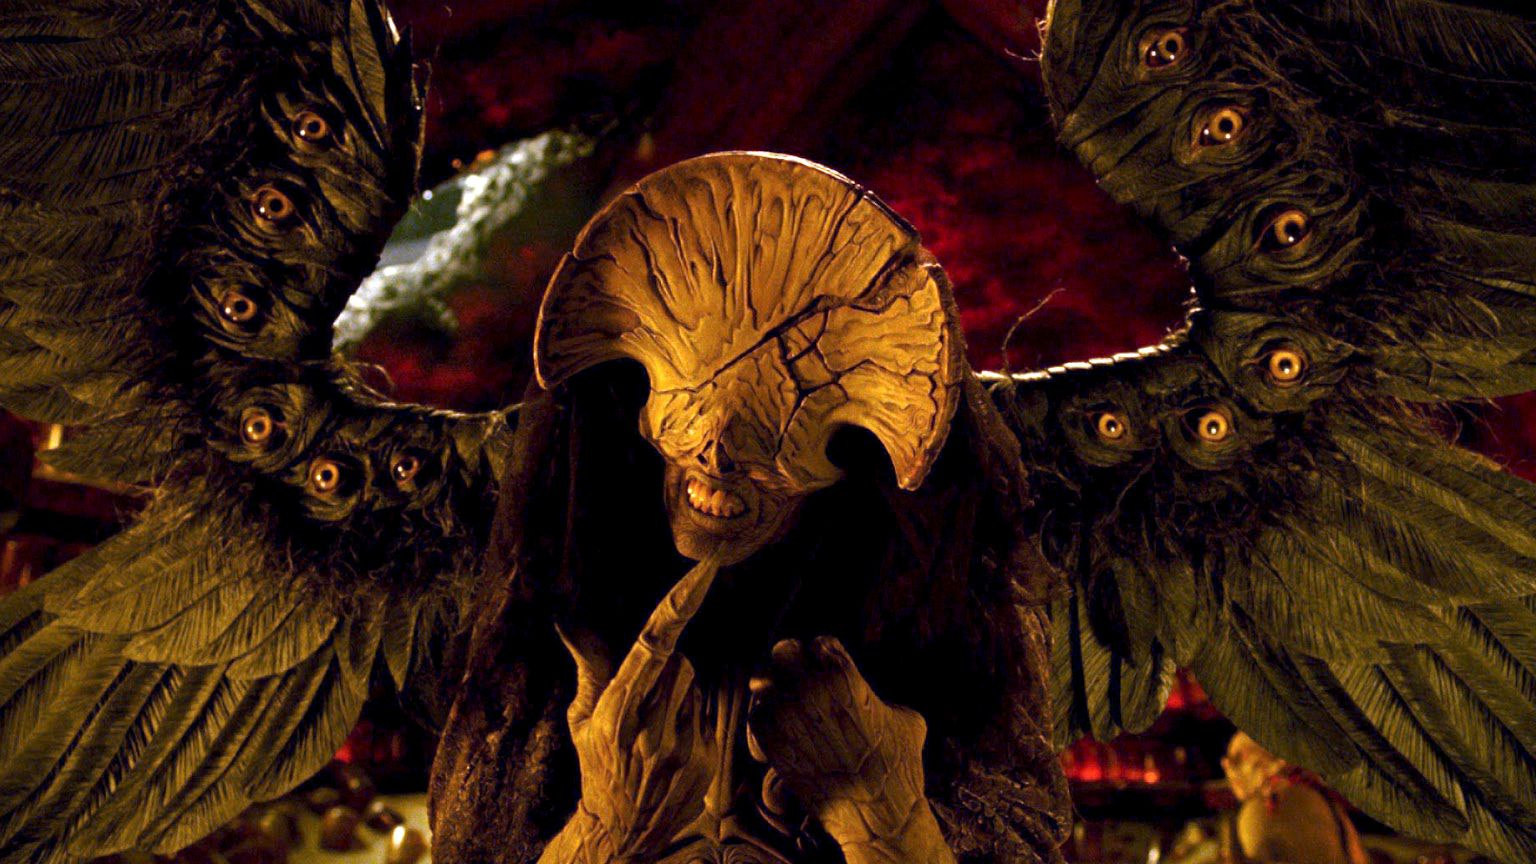 Free Download Pans Labyrinth Wallpaper 21 1600 X 864 Stmednet 1600x864 For Your Desktop Mobile Tablet Explore 46 Labyrinth Wallpaper Labyrinth Wallpaper